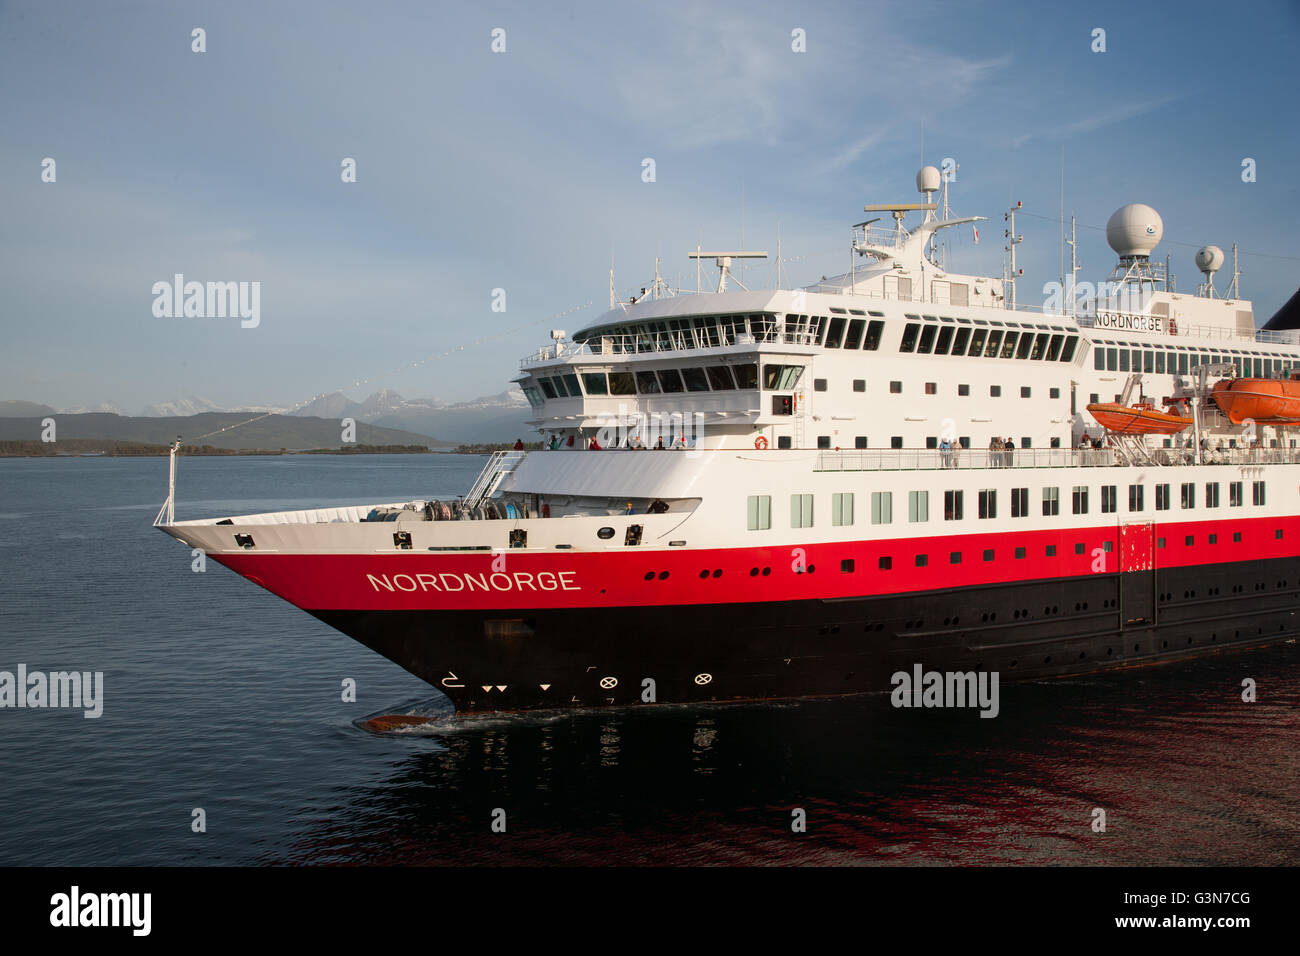 Nord Norge Coastal Steamer Stock Photo Royalty Free Image - Can you take a steamer on a cruise ship